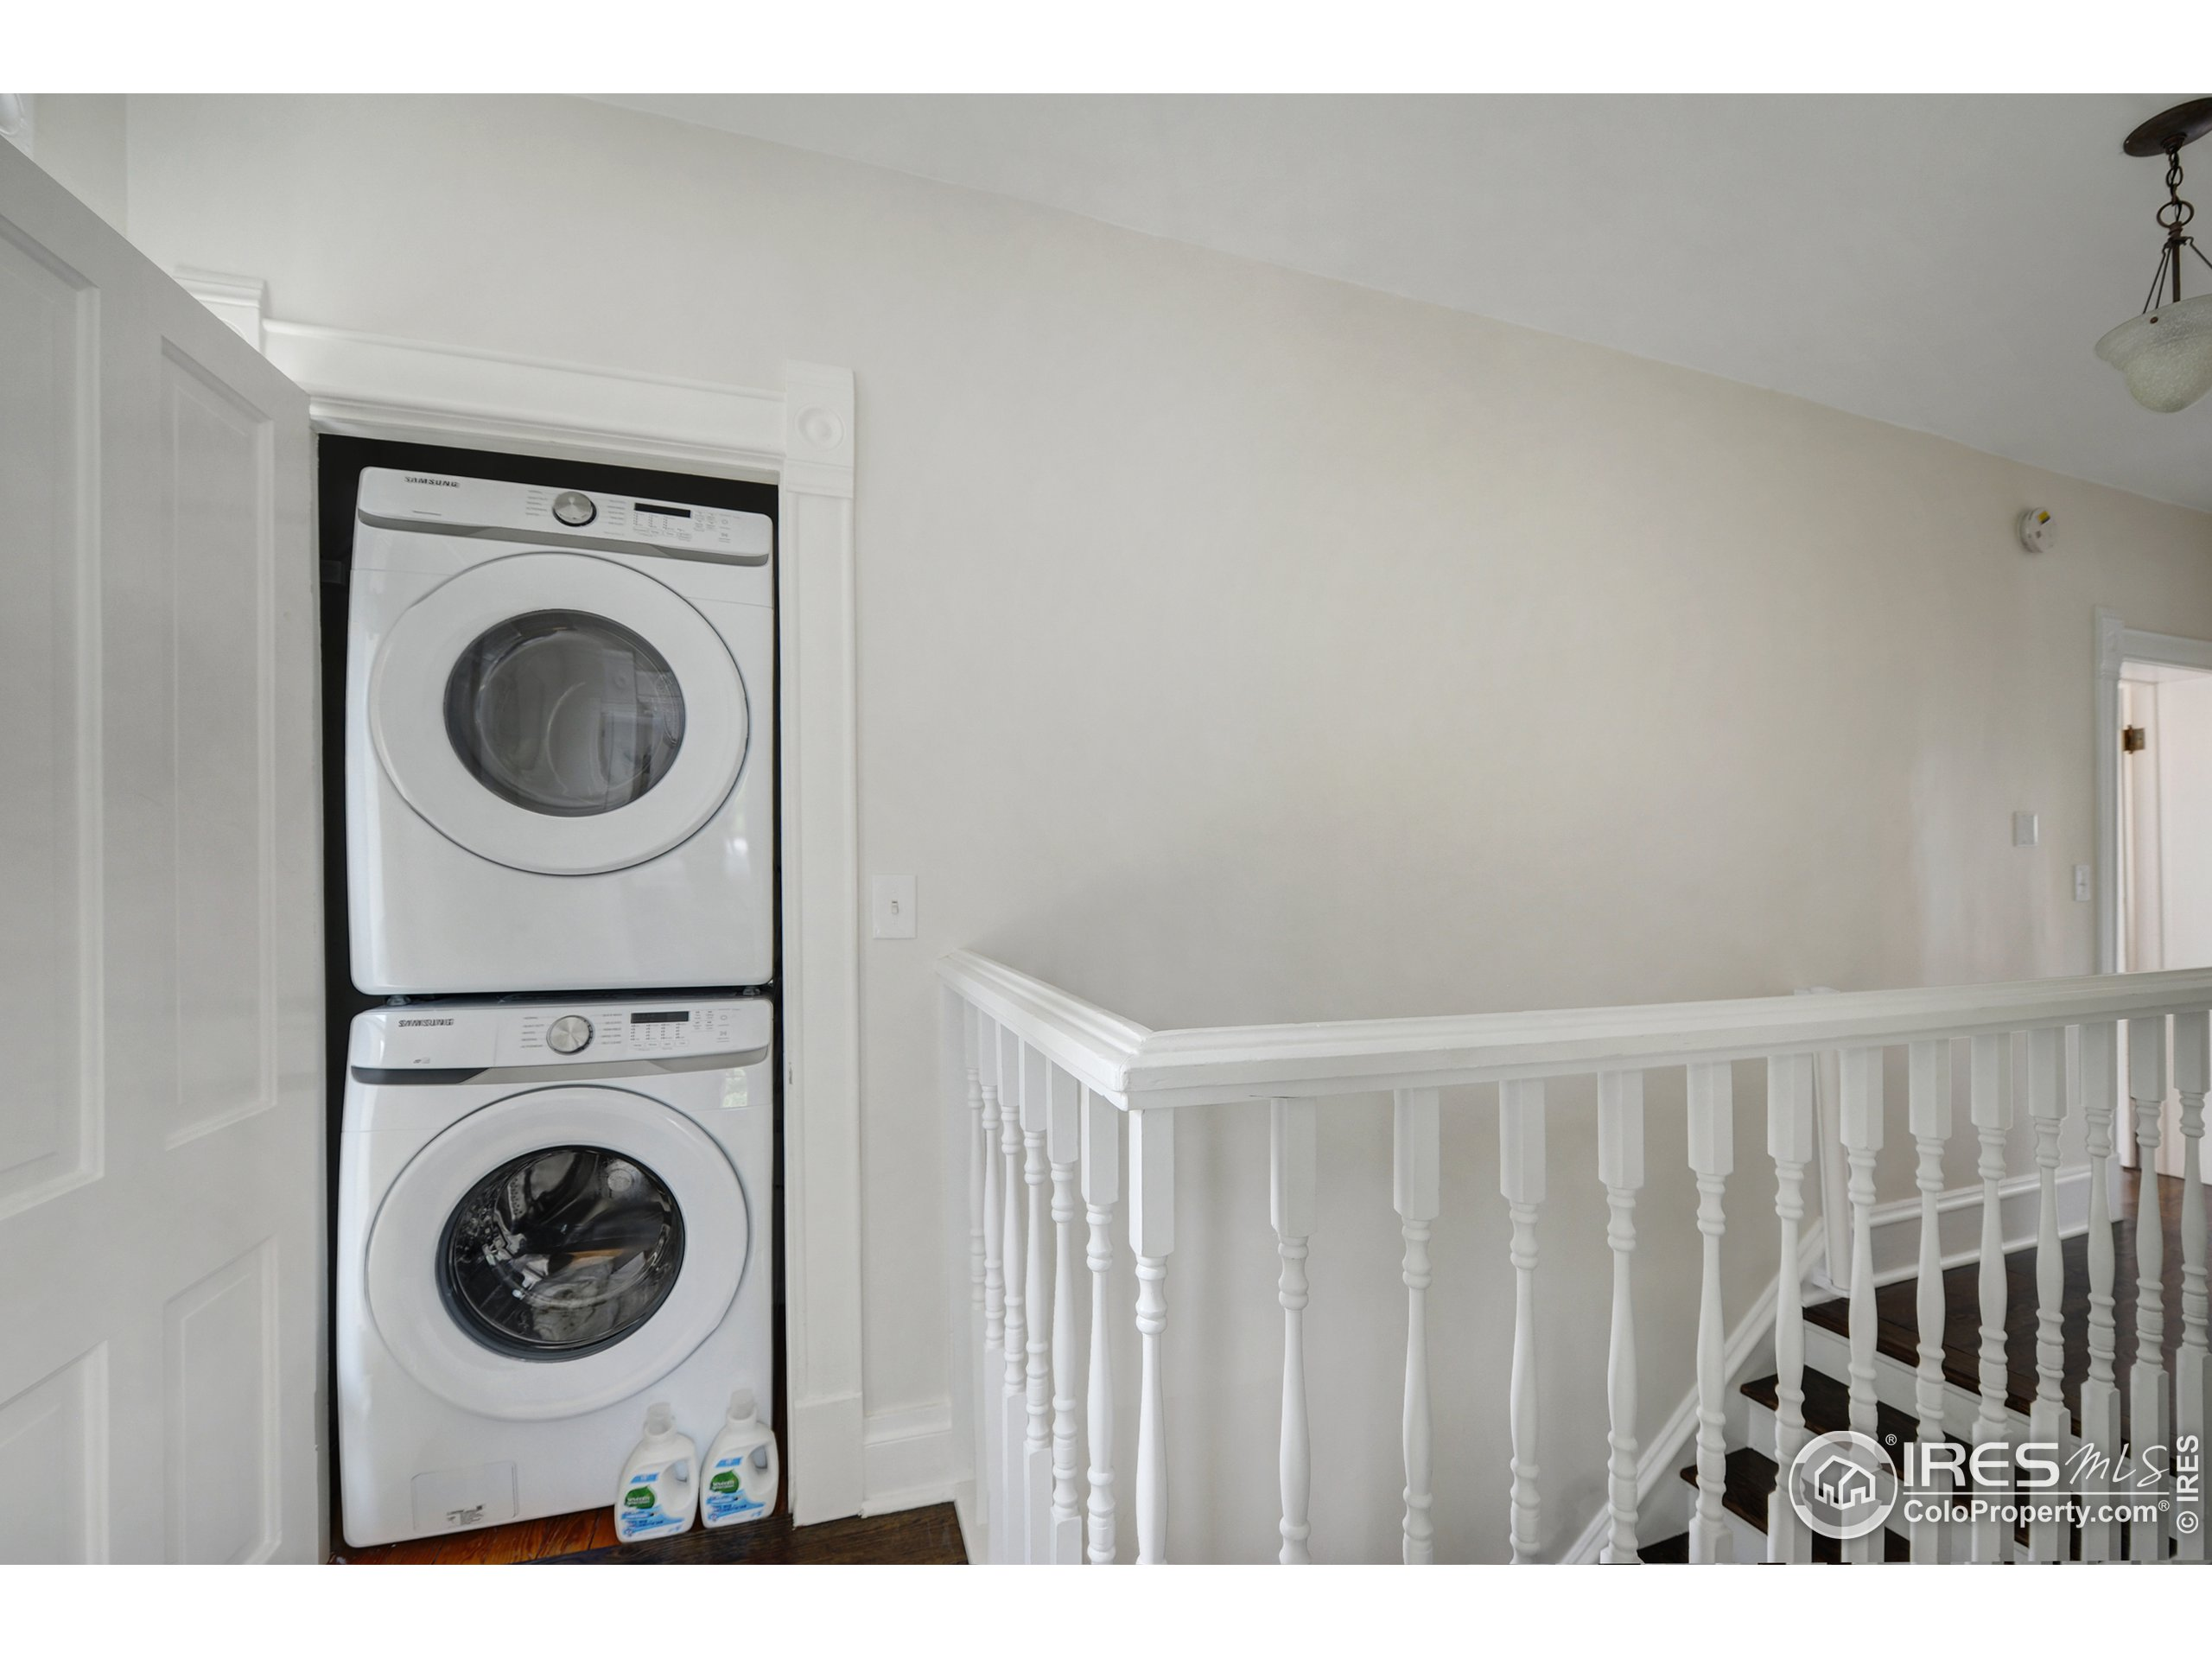 Convenient 2nd story laundry in addition to basement laundry room